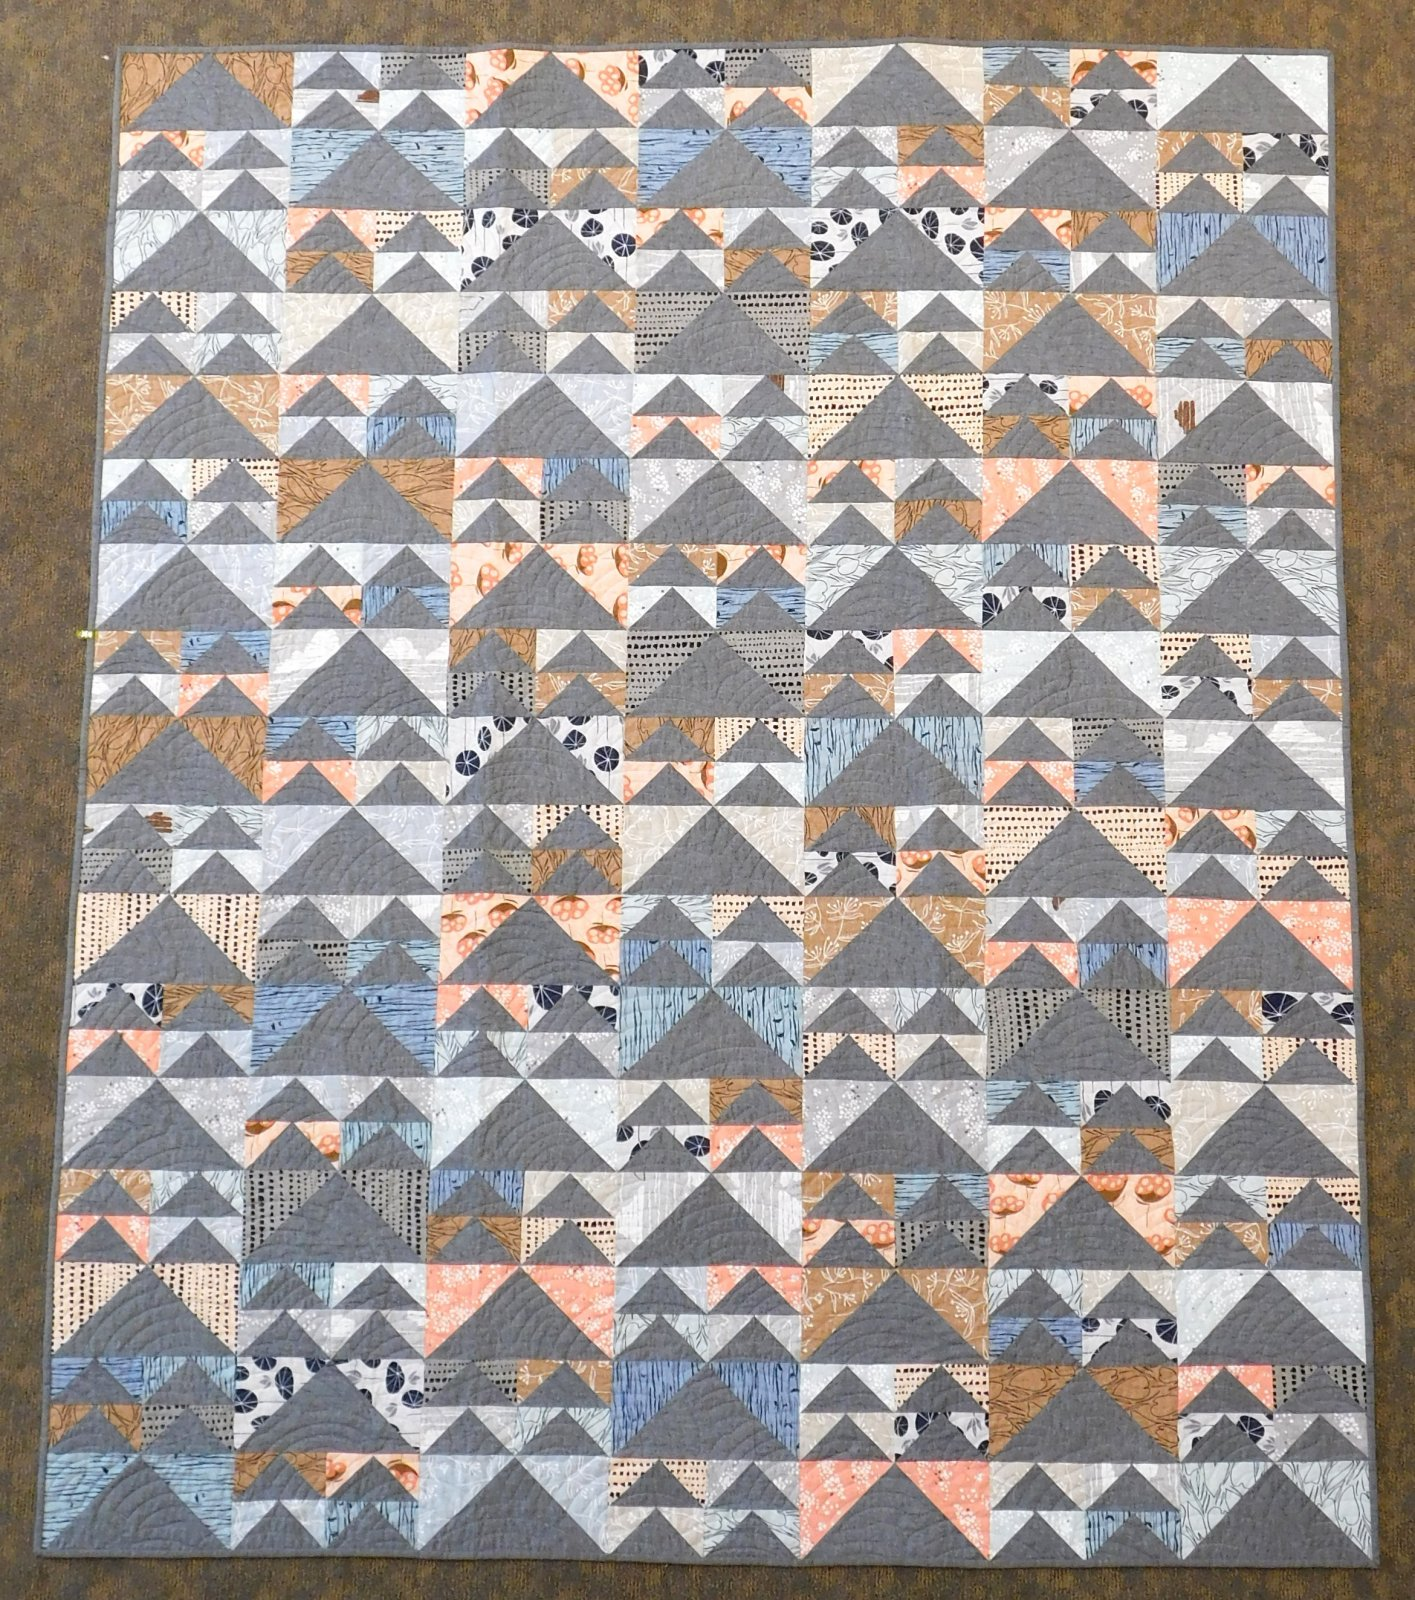 Geese In Flight Quilt Kit 70 x 85